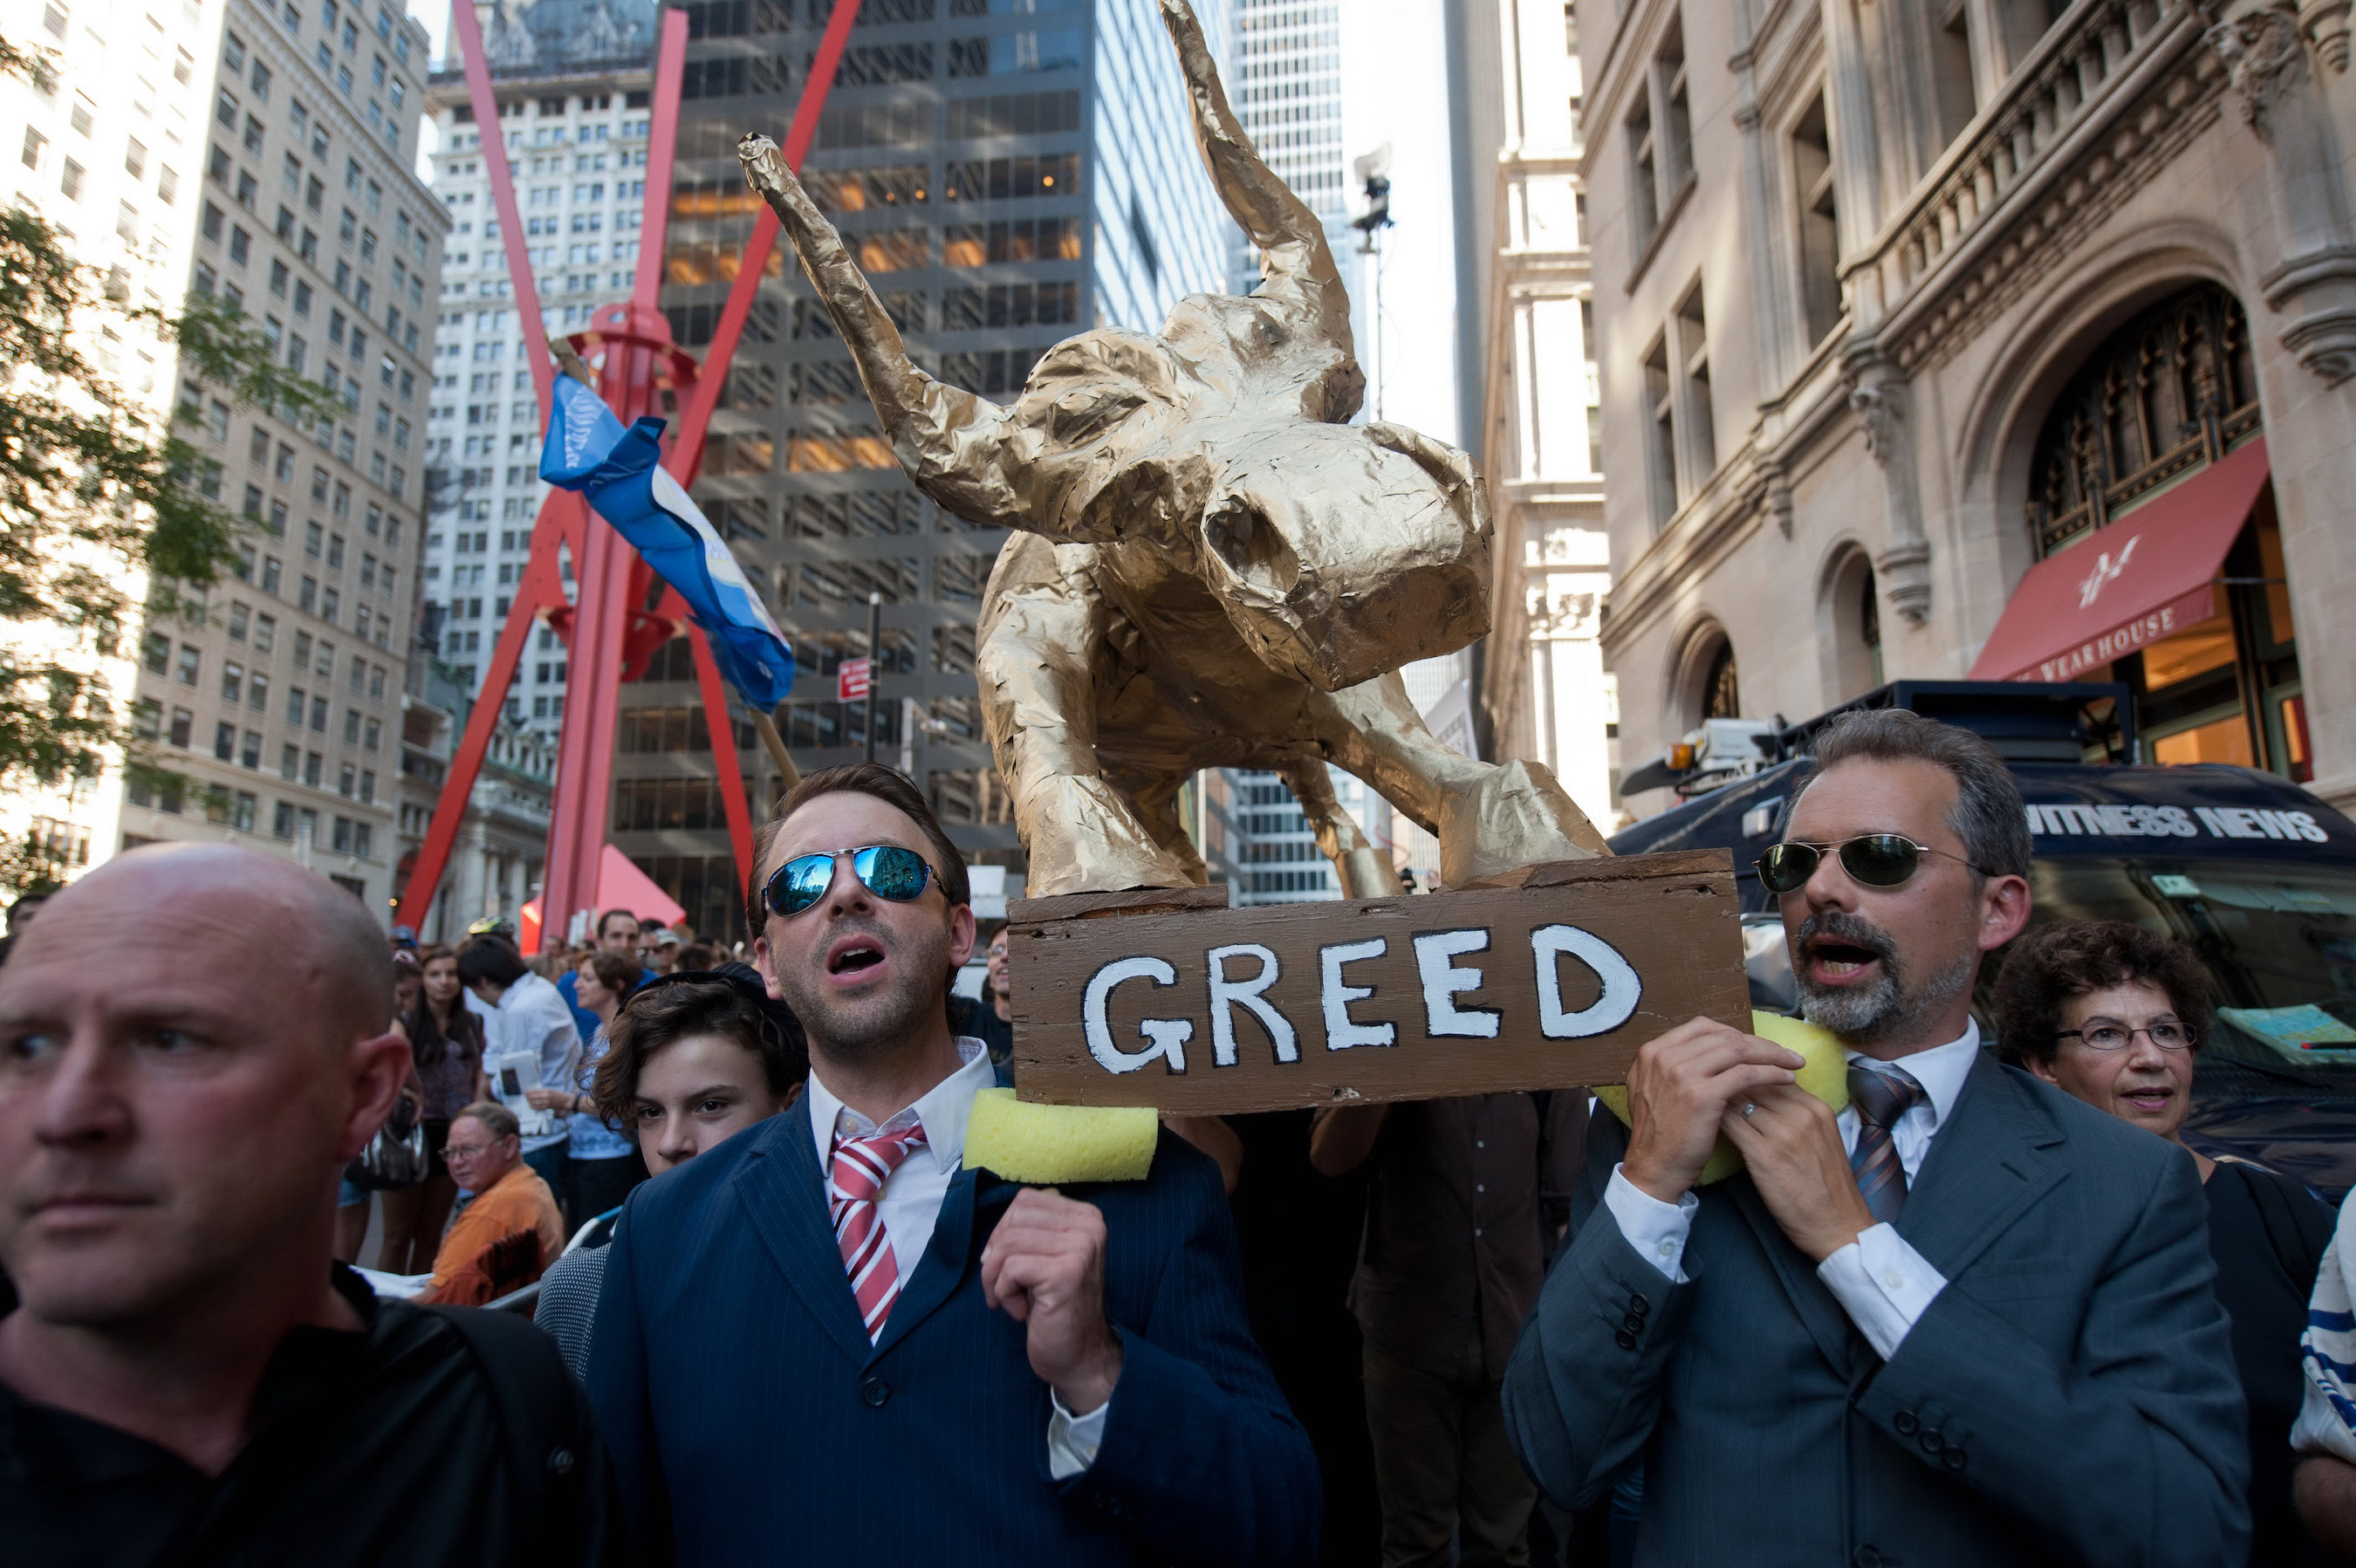 Two men in suits hold a sign that reads 'greed' in downtown New York